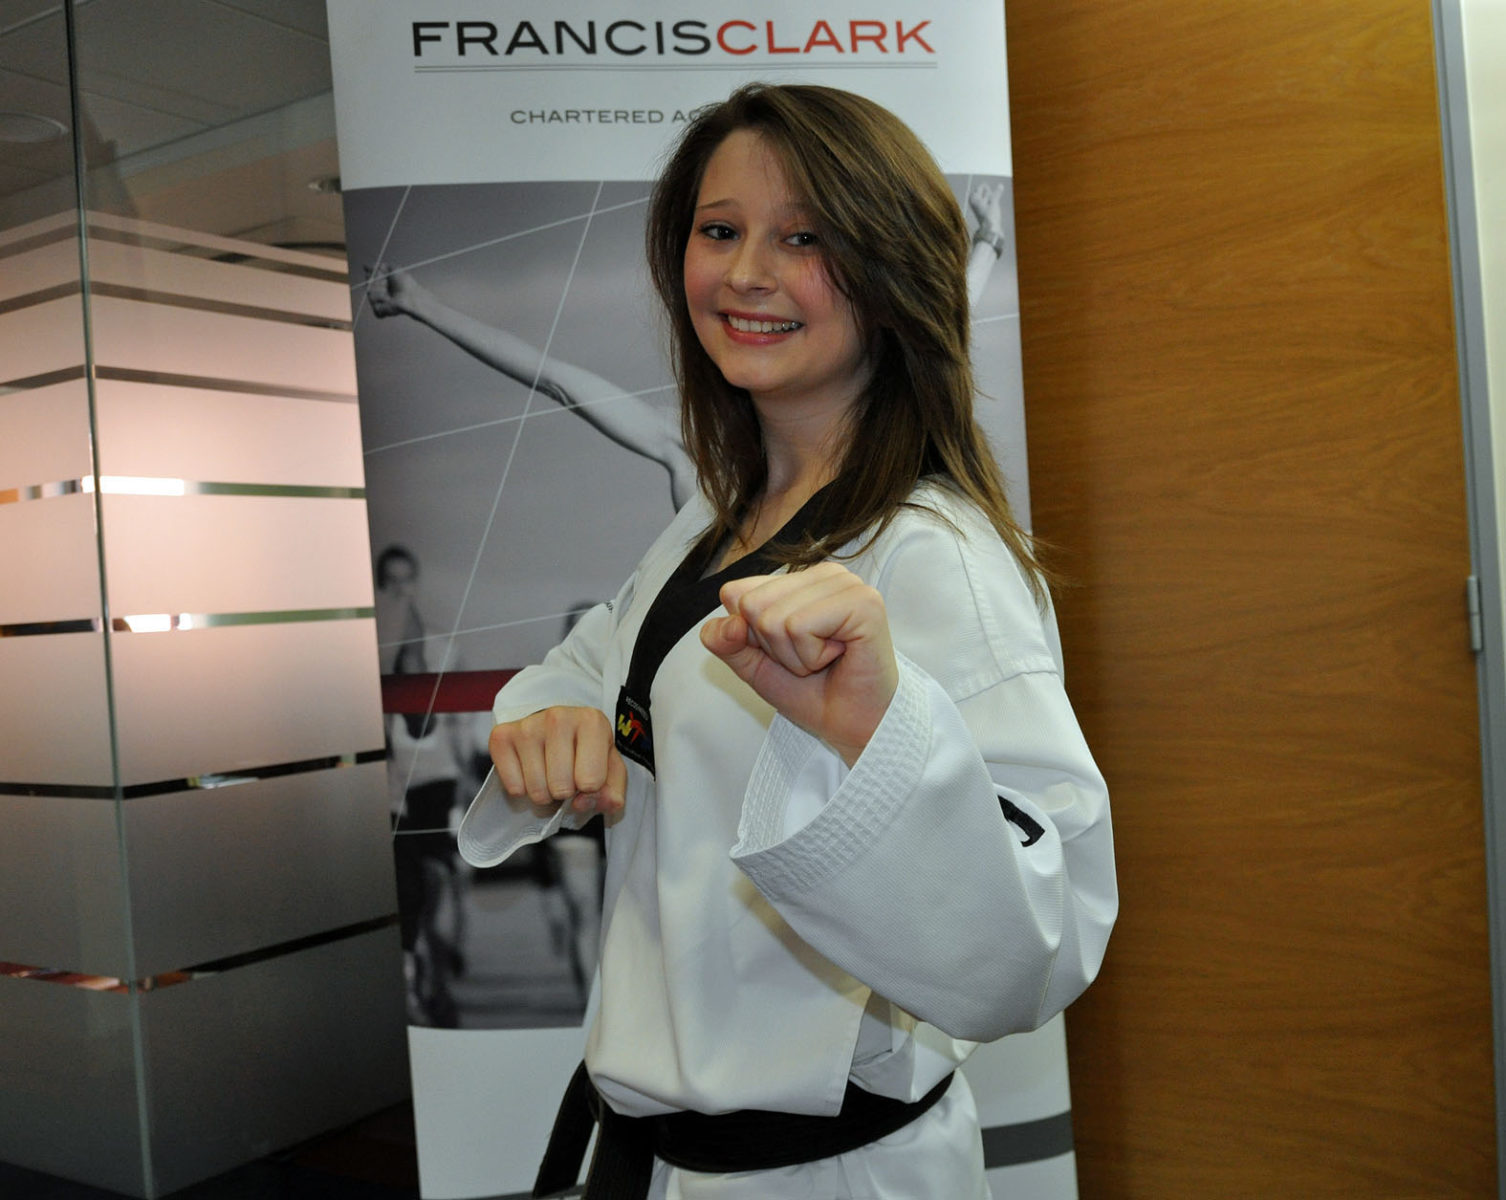 Getting a kick: Fiona Wright, a tax assistant with PKF Francis Clark, who has qualified as a taekwondo instructor.